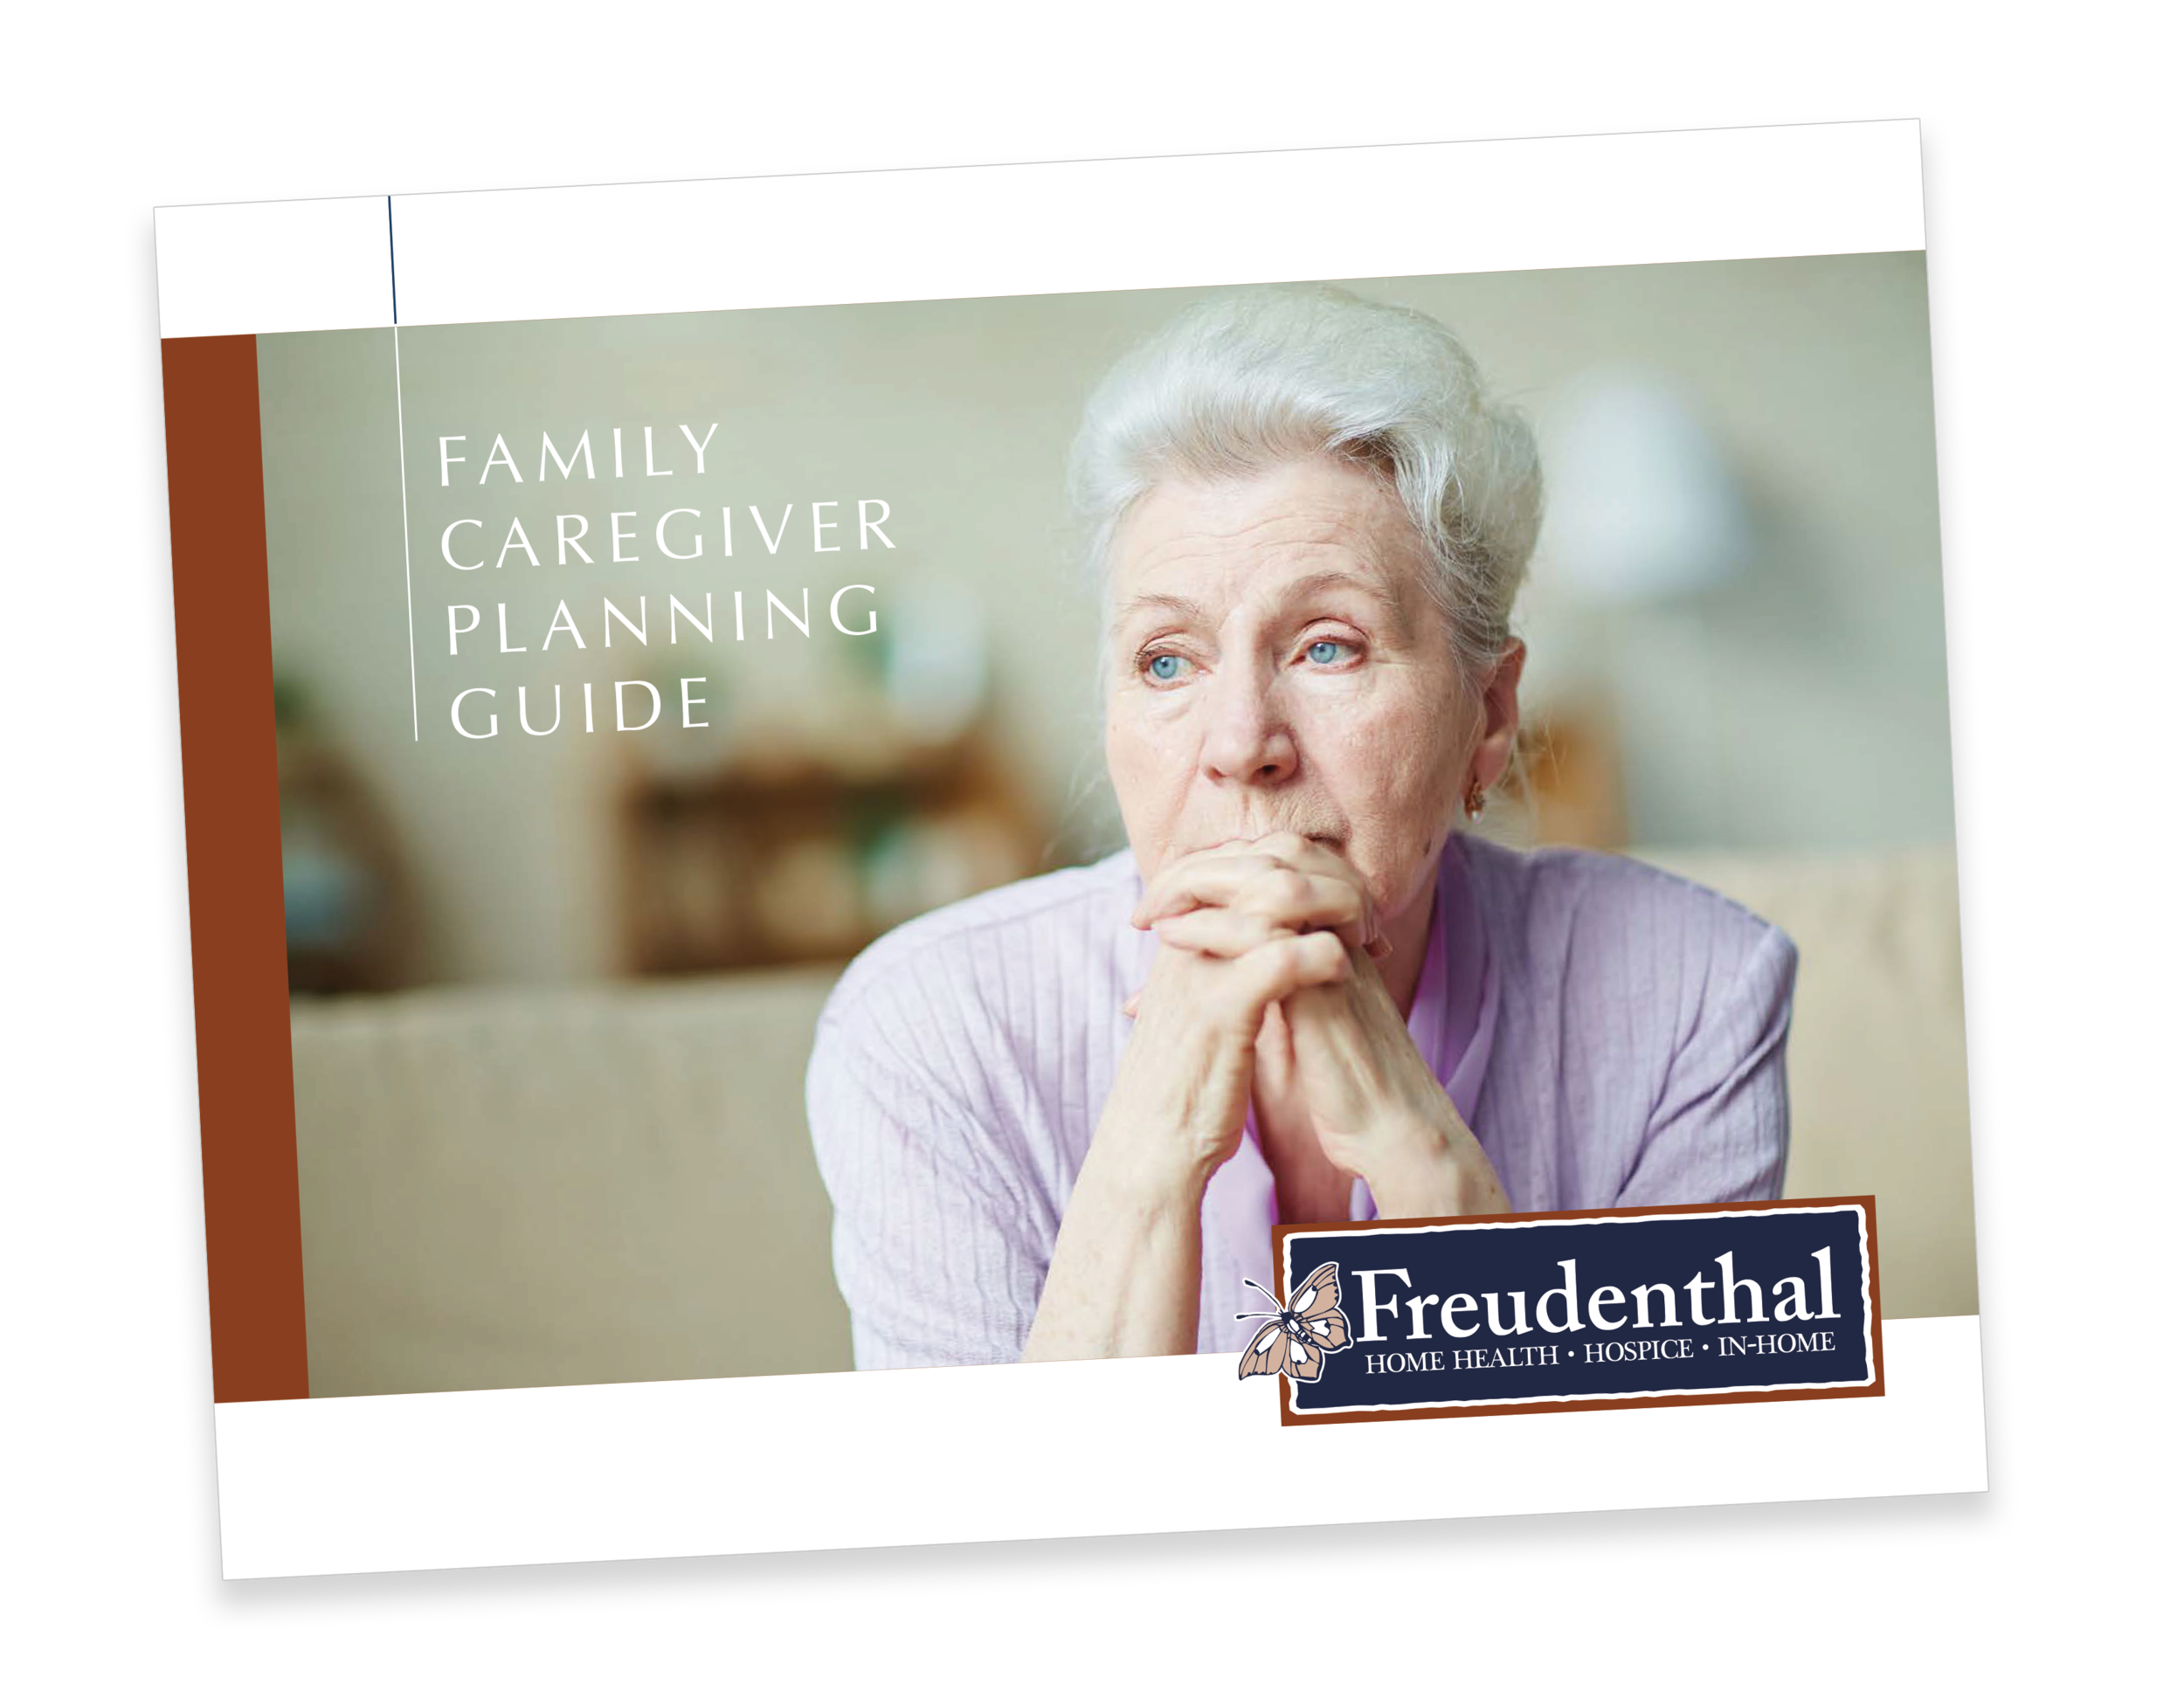 FHH_FamilyCaregiverGuide-1.png